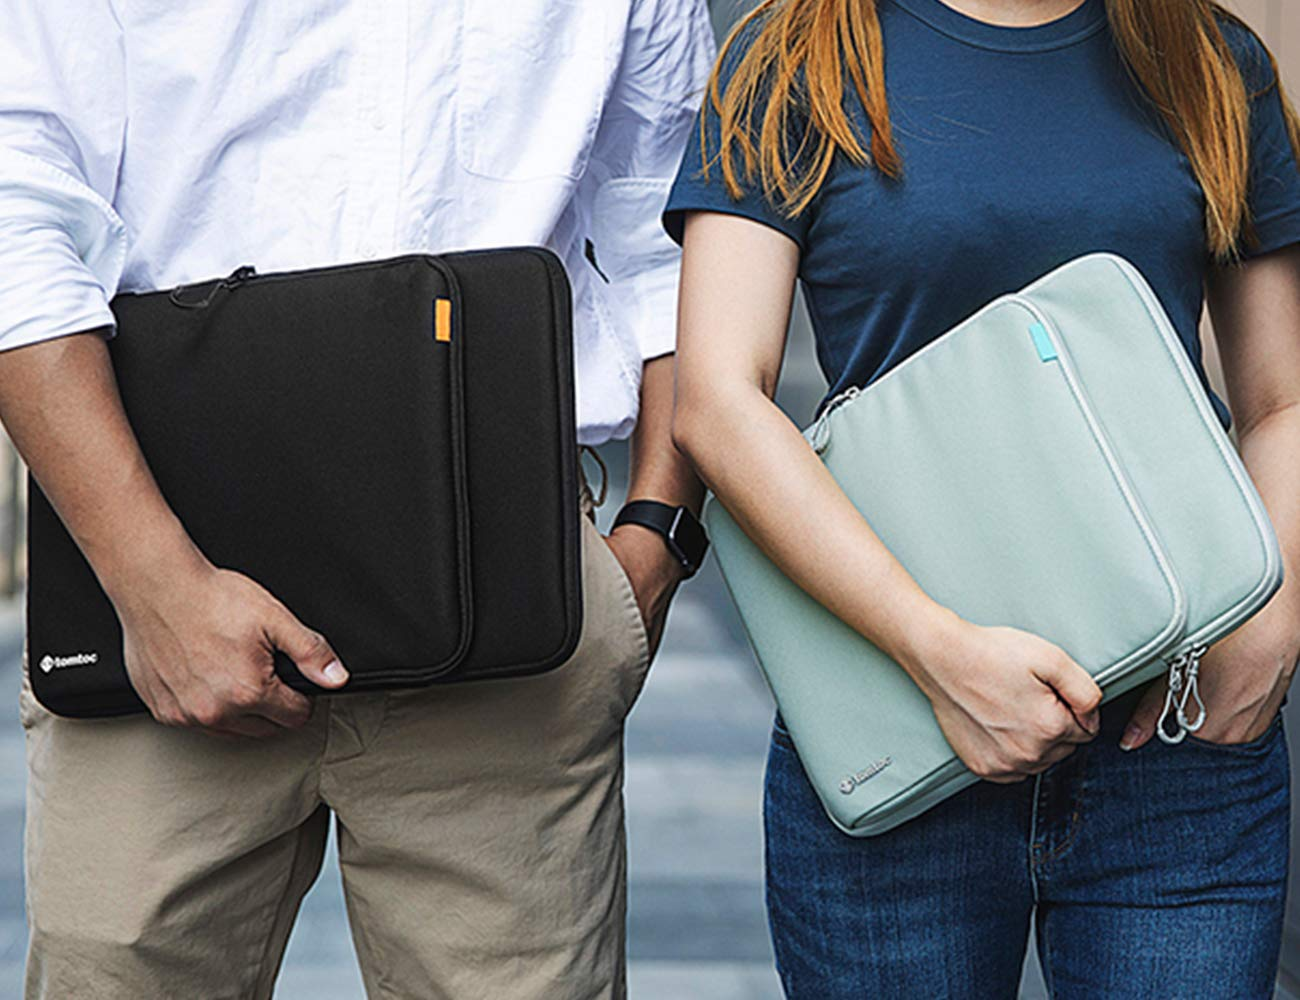 tomtoc 360 Protection Laptop Sleeve Designed for 15 Inch New MacBook Pro with USB-C A1707 A1990, with Handle and Organized Pocket for MacBook Accessories, Cordura Fiber by tomtoc (Image #7)